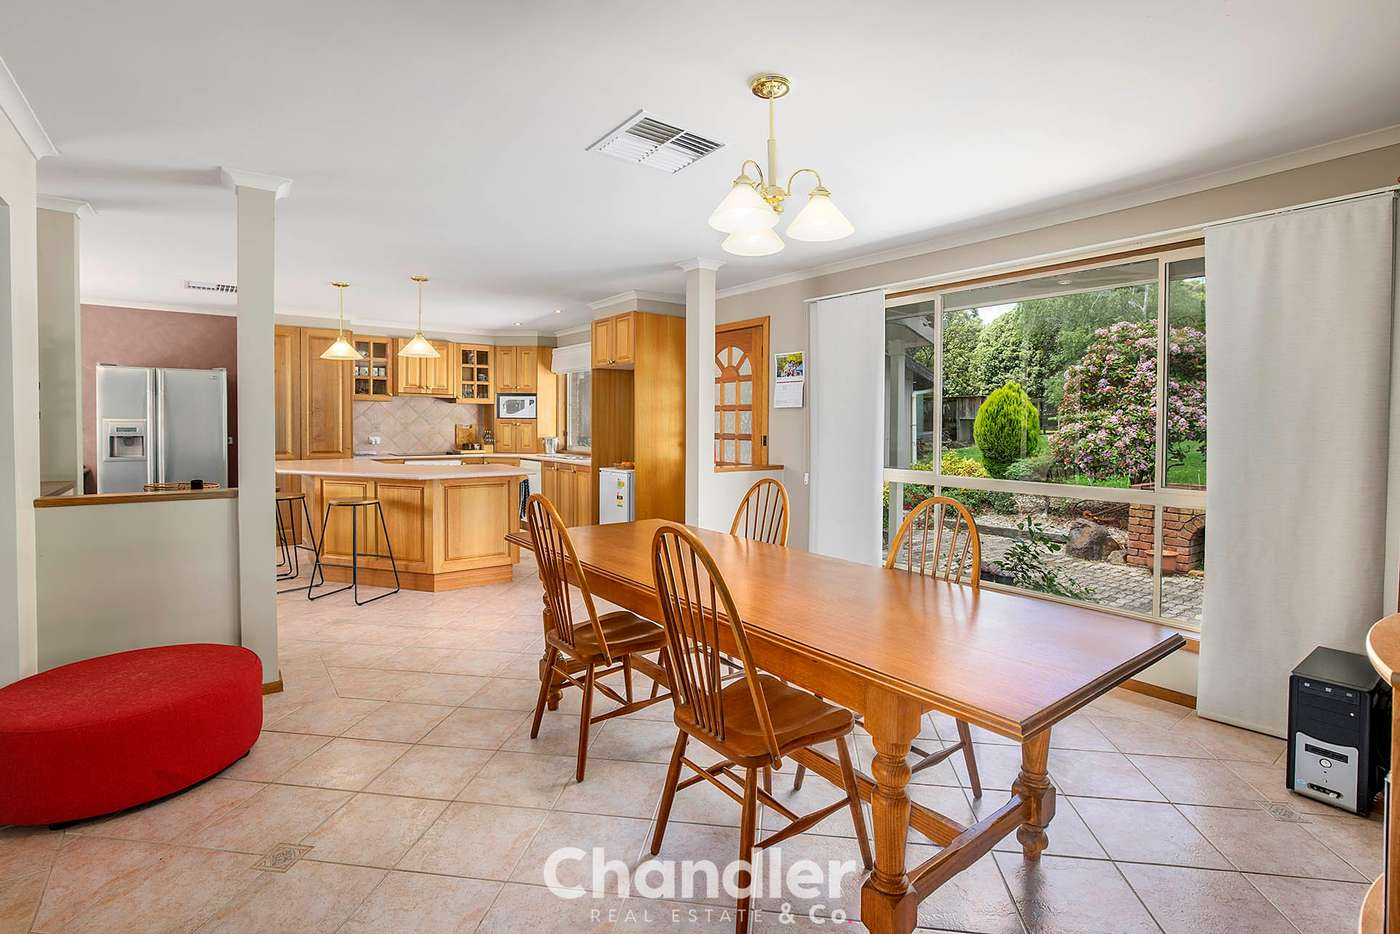 Fifth view of Homely house listing, 9 Mt Morton Road, Belgrave South VIC 3160